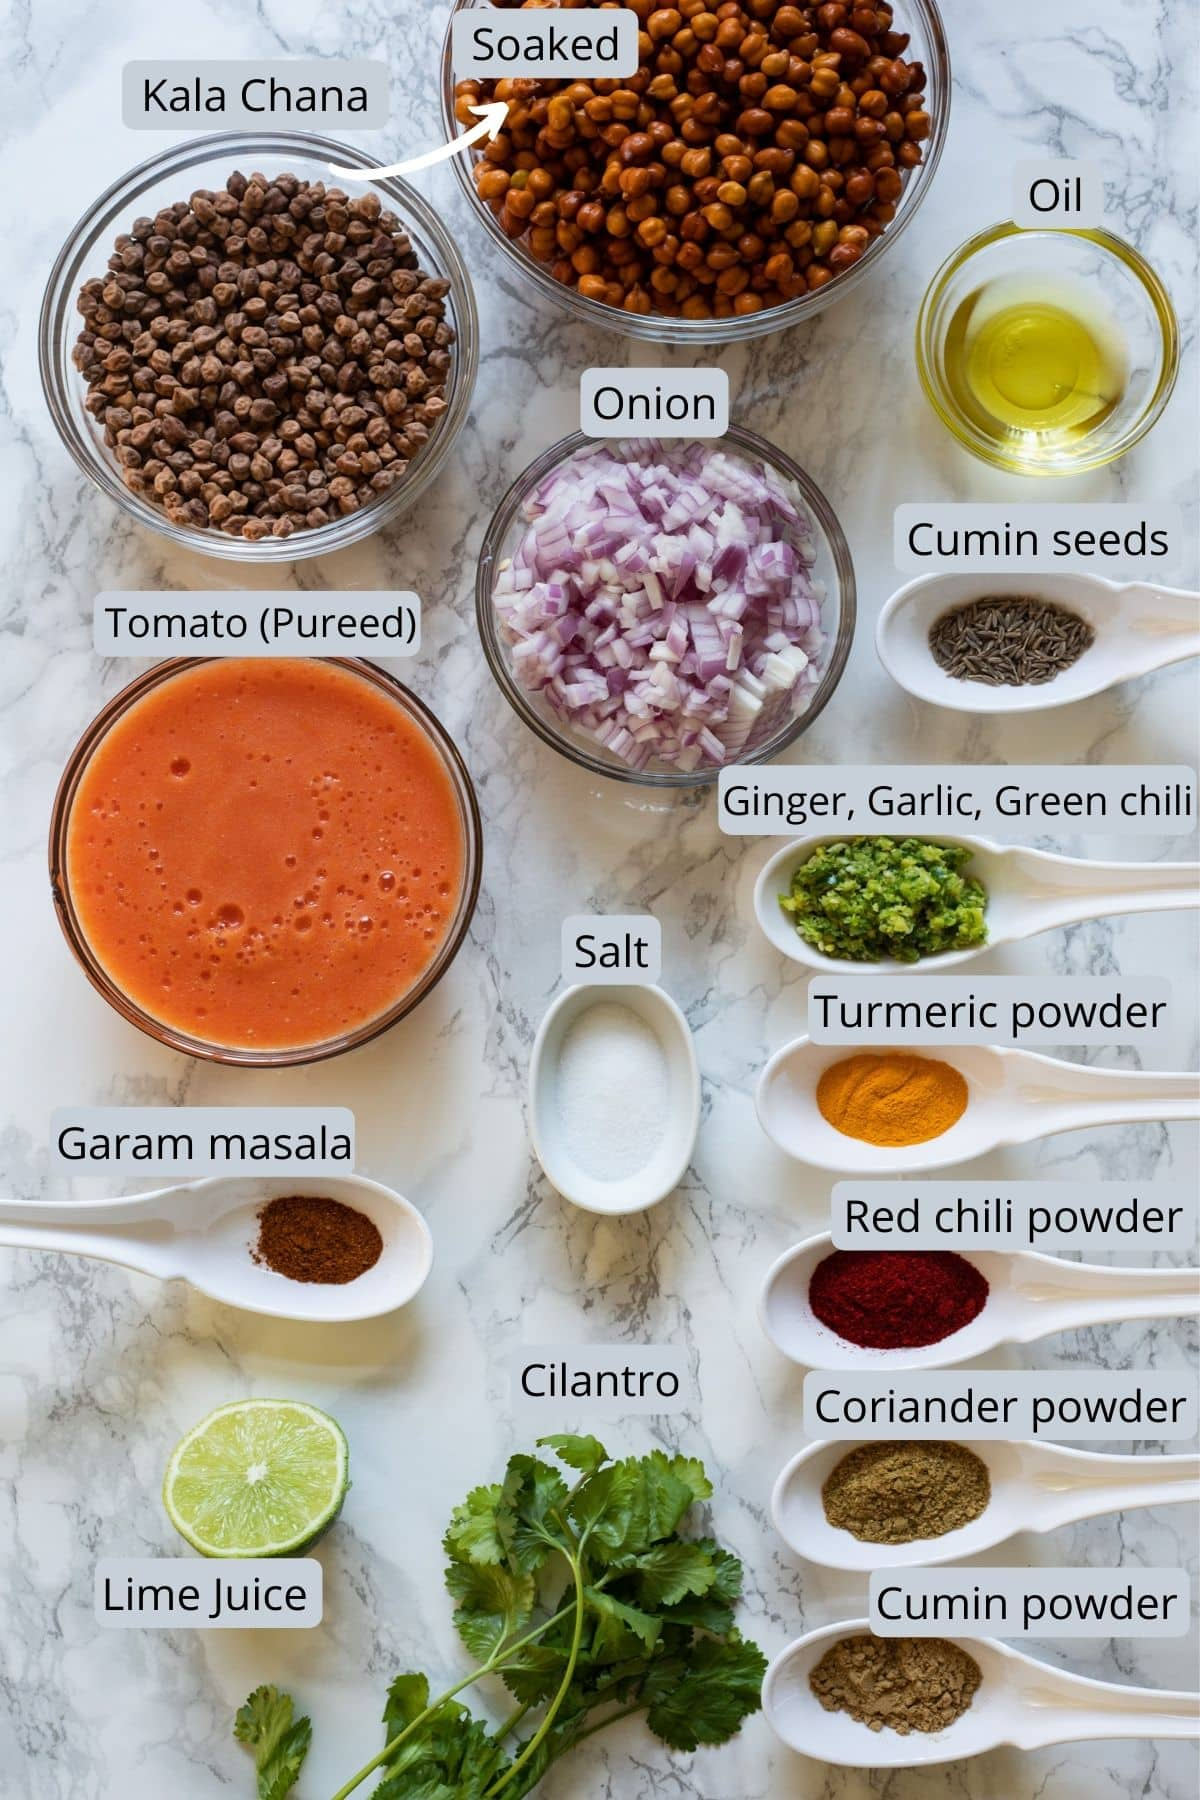 Ingredients used in kala chana includes chana, onion, tomato, ginger, garlic, green chili, spices, oil, salt, cilantro and lime.